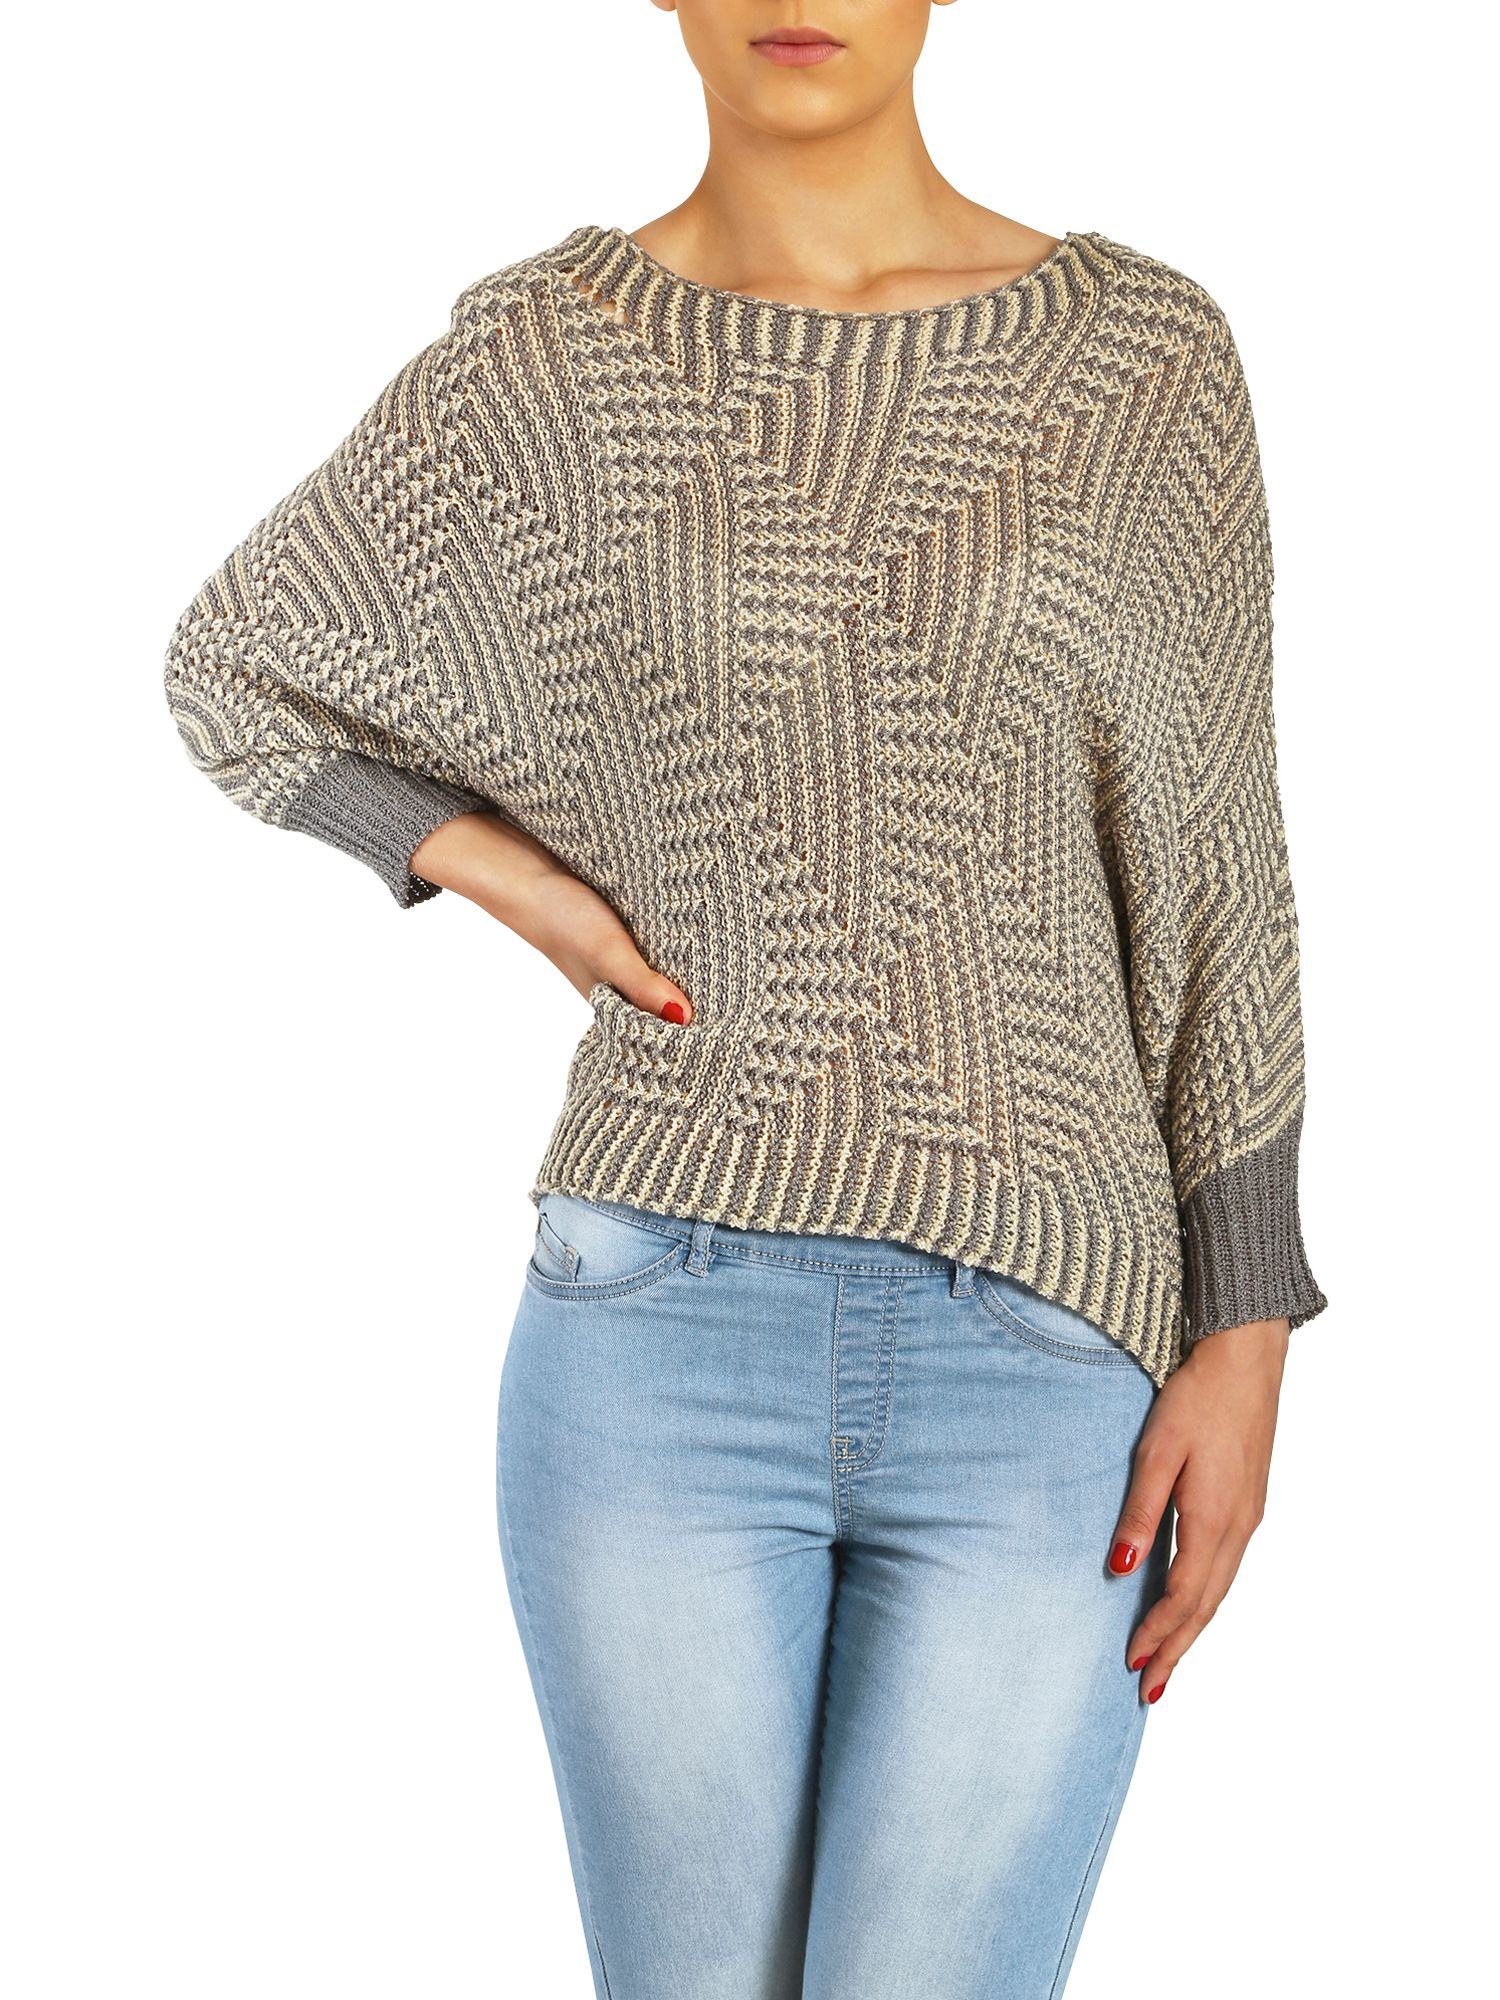 Oversized batwing knit top